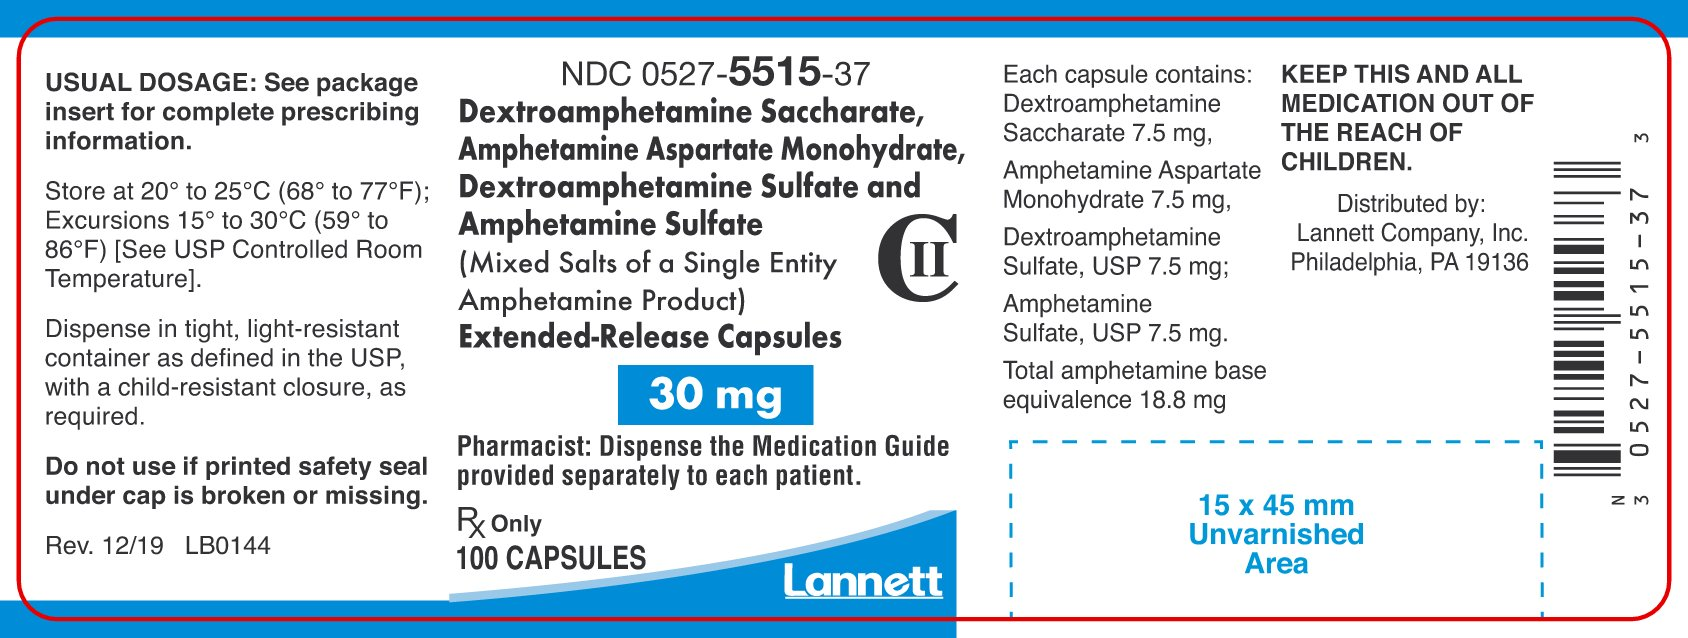 amphetamine-er-container-label-30mg-100ct